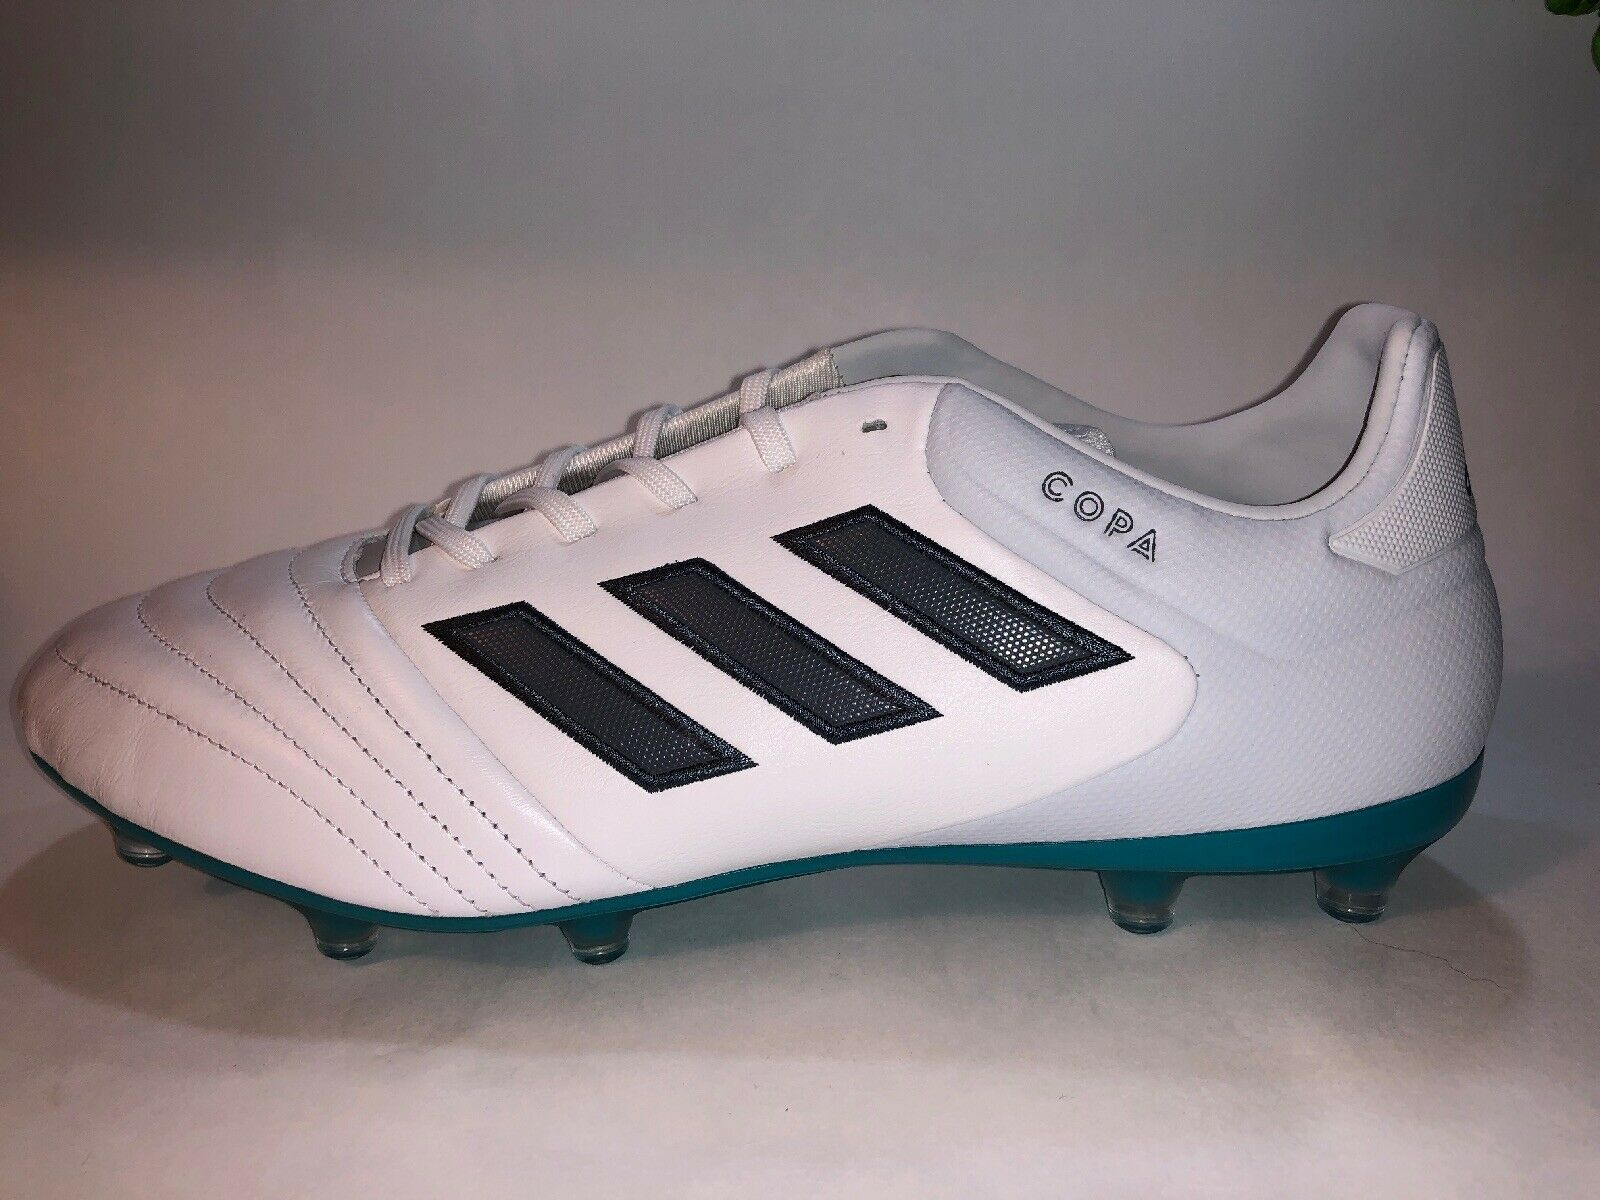 Size 10.5 Mens Adidas Copa 17.2 FG FG FG Firm Ground Soccer Cleats - White Grey bluee 1937fc